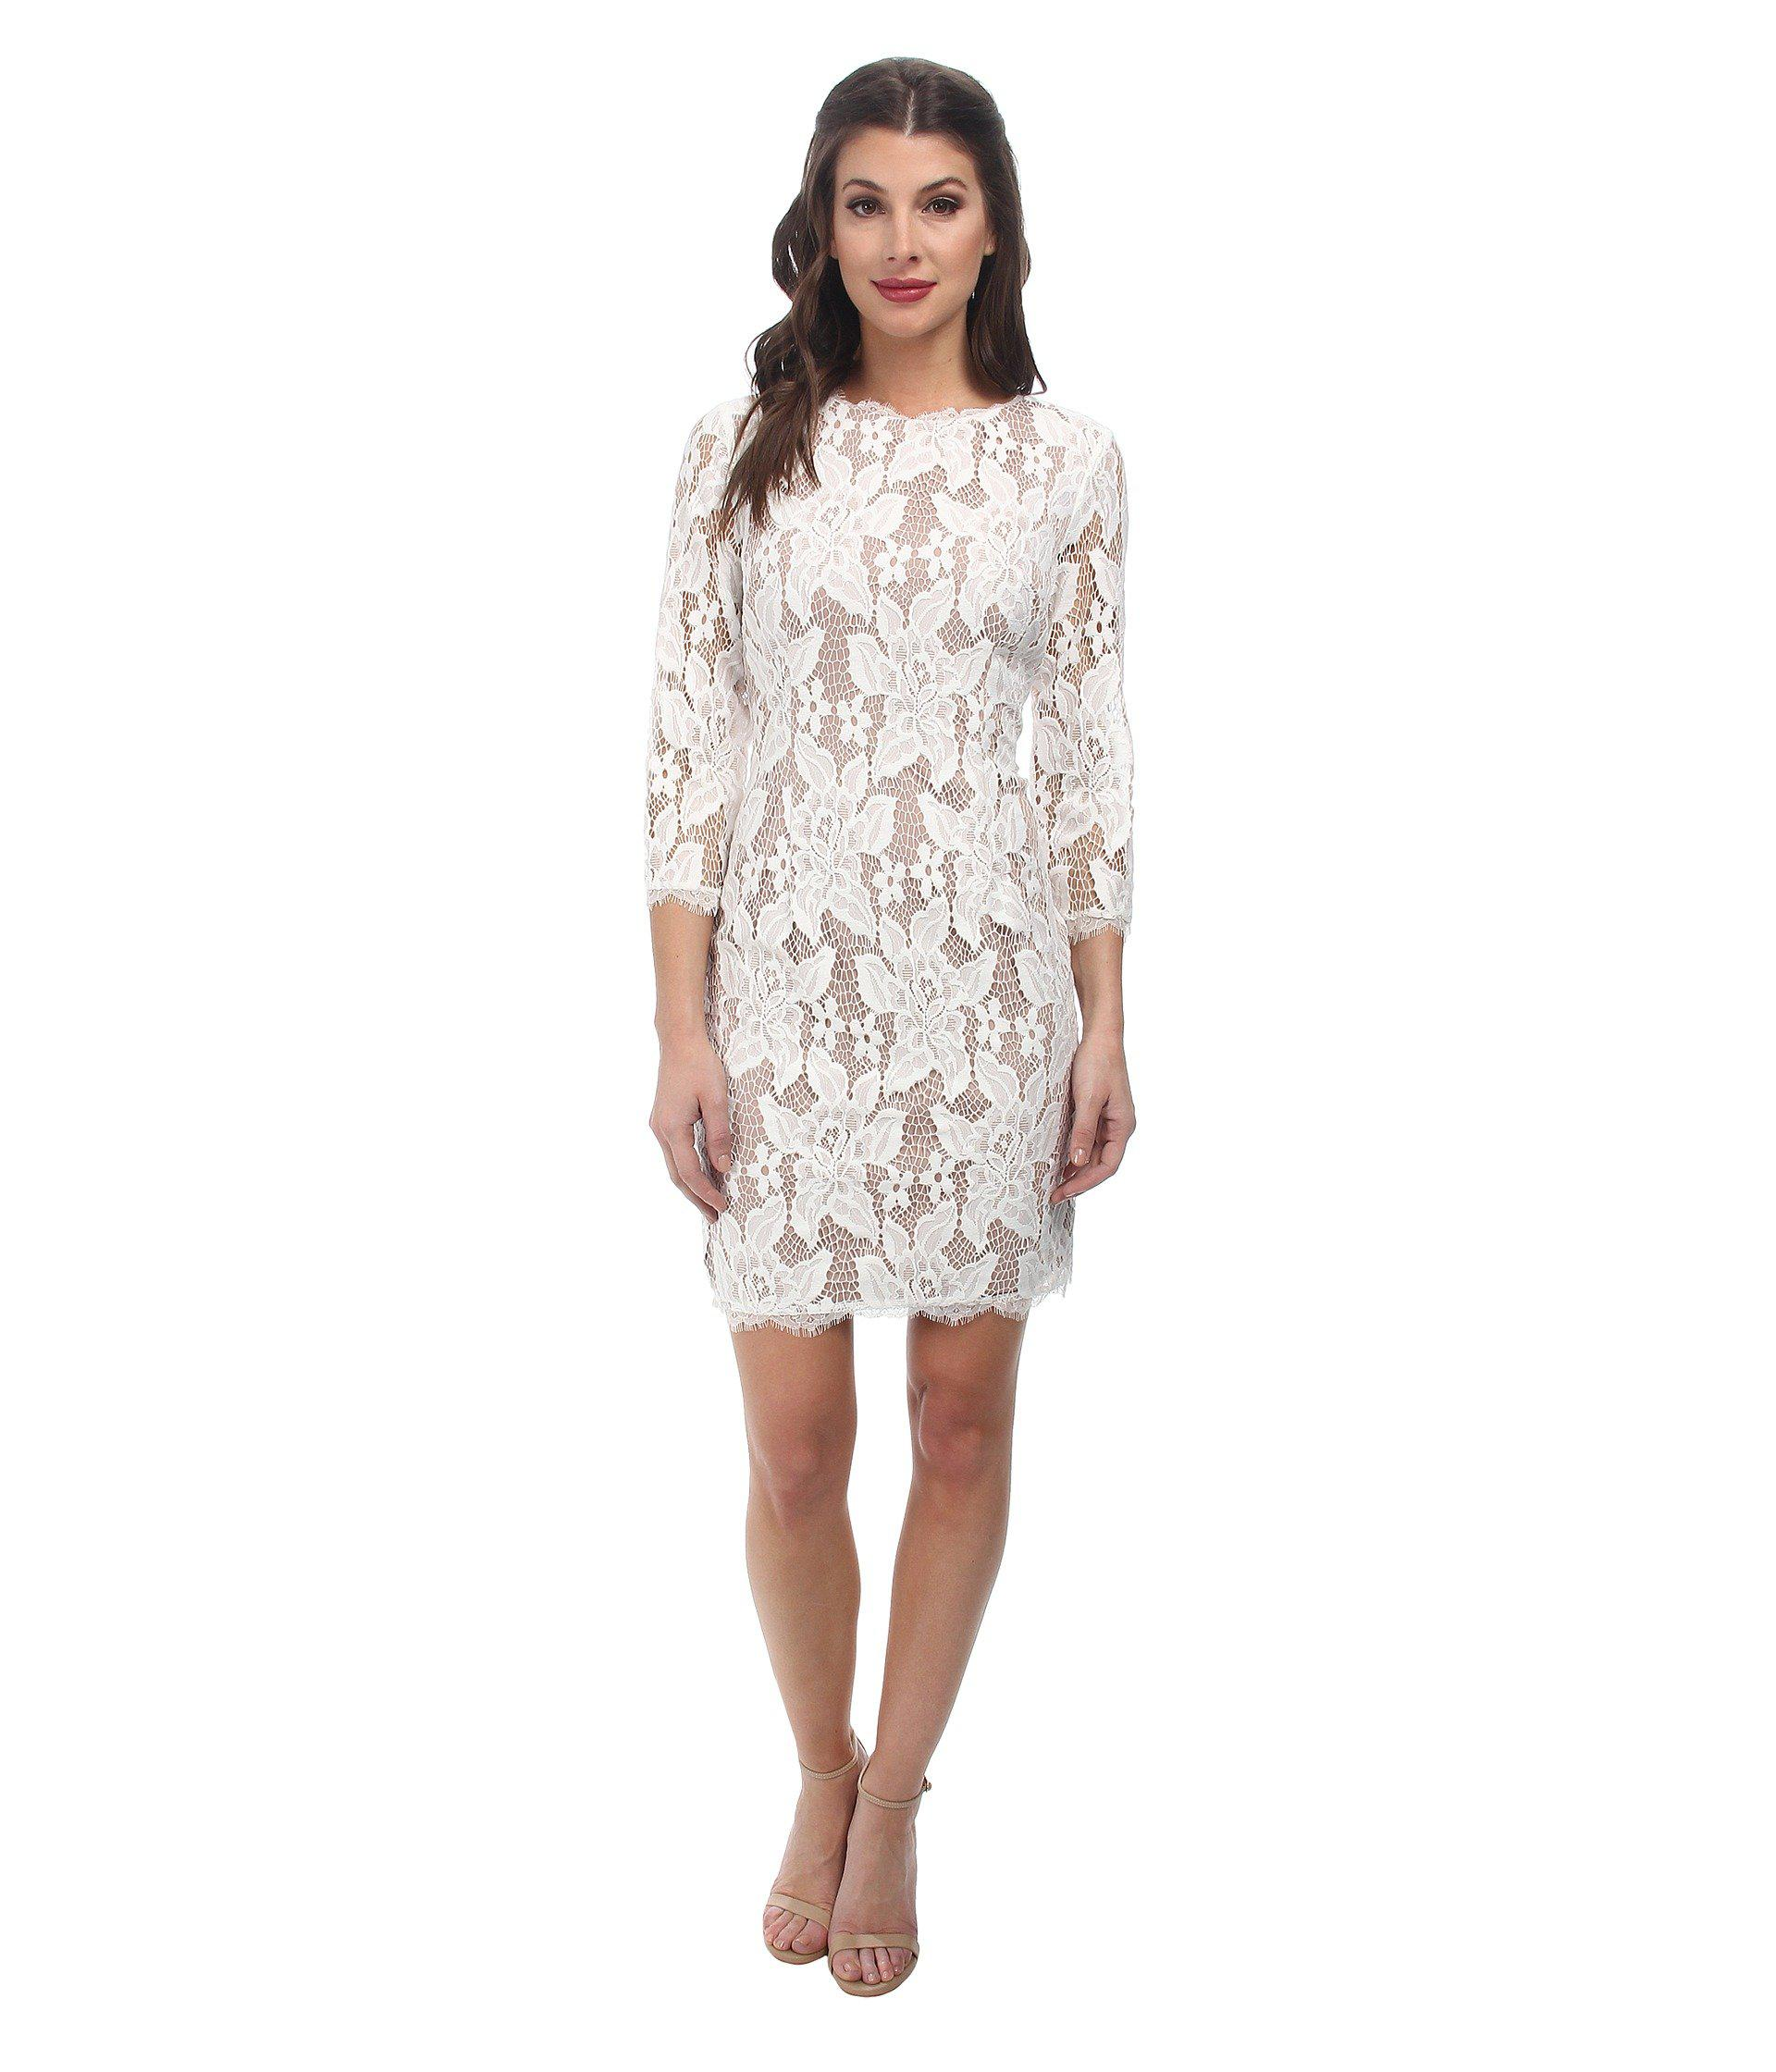 Lyst - Adrianna Papell 3/4 Sleeved Cocktail Dress in White